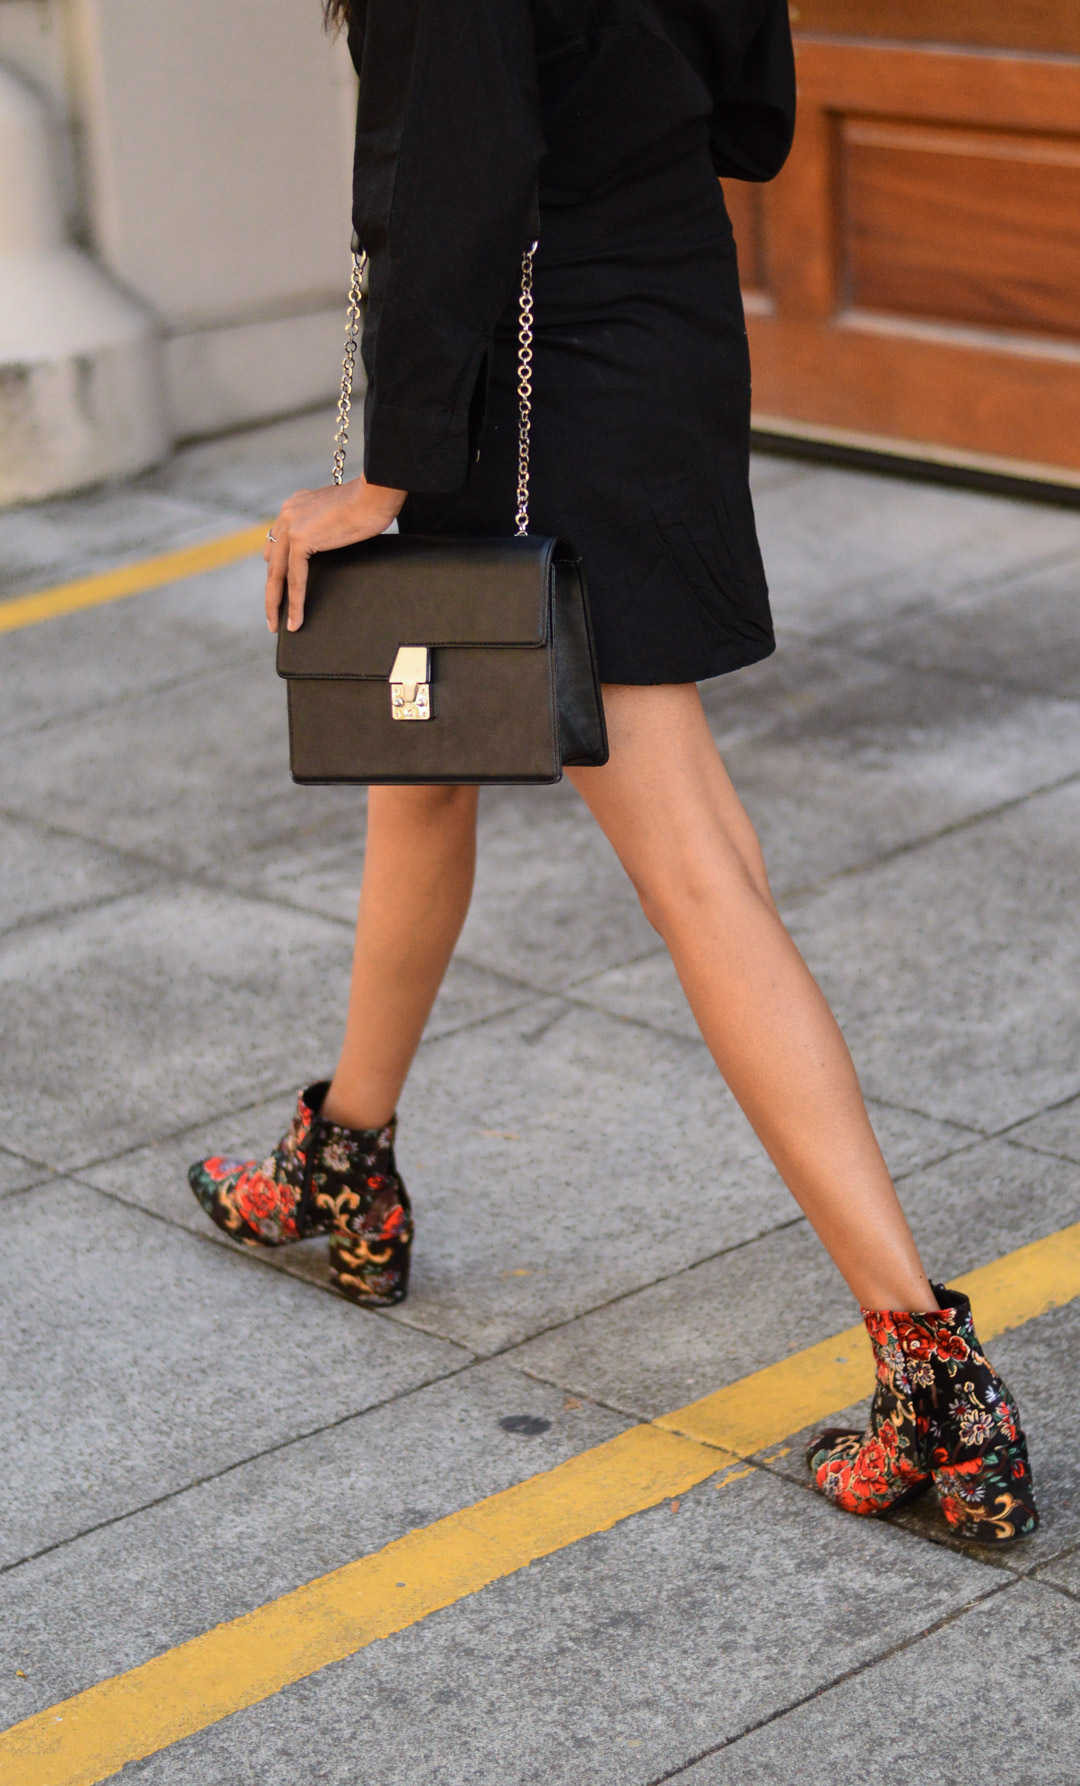 shirtdress-floral-velvet-boots-blogger-outfit-fall-style 8